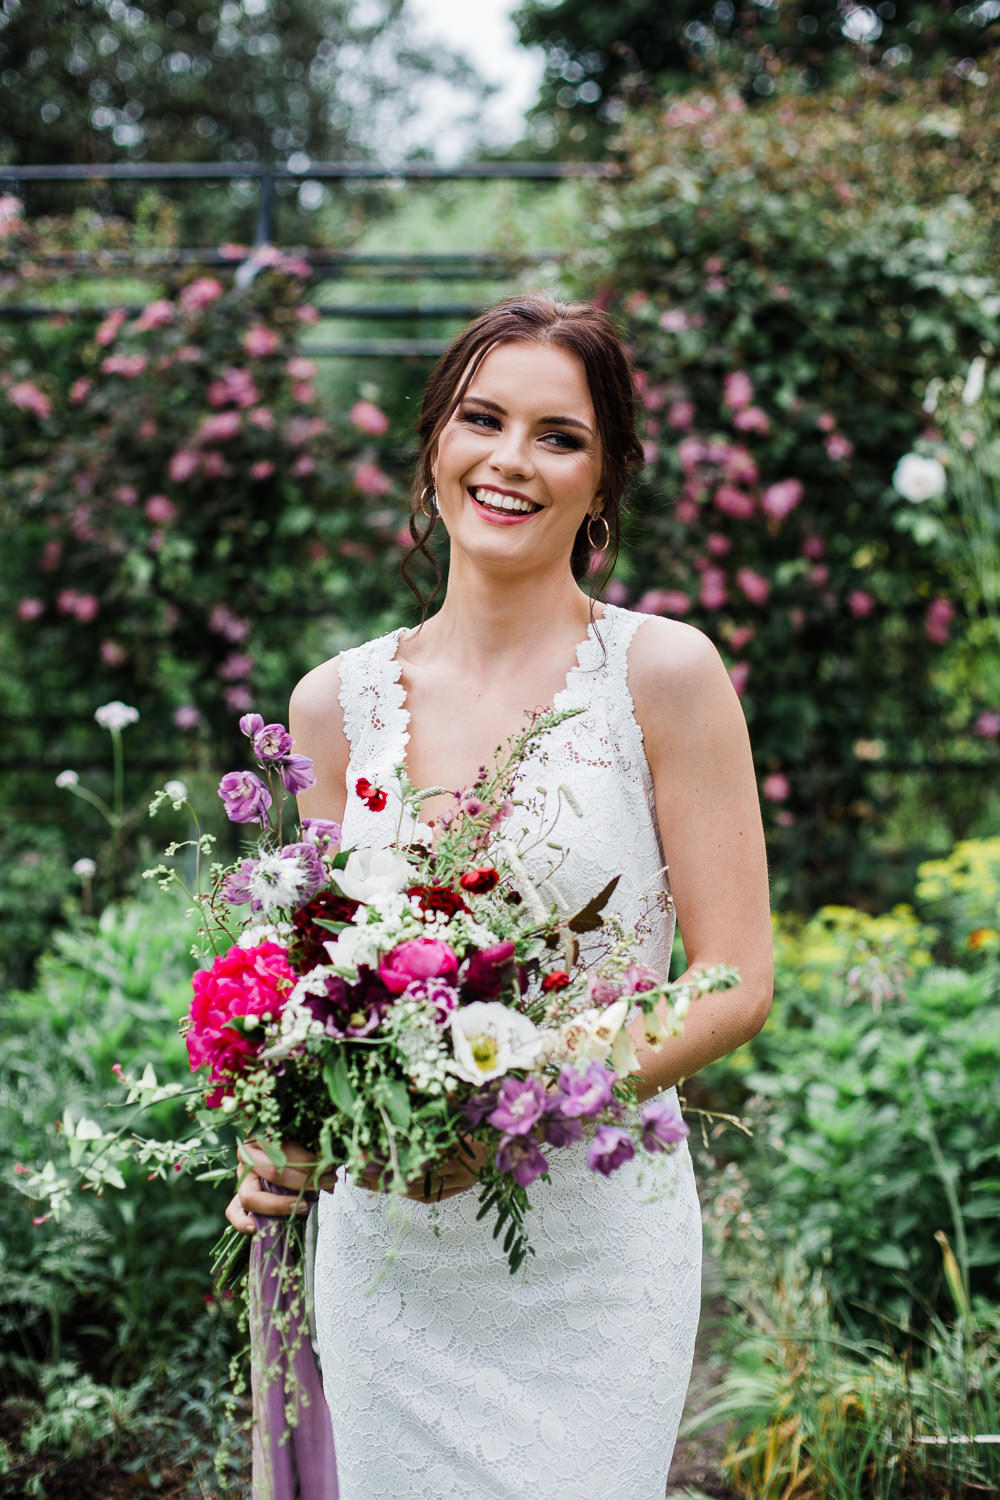 Bouquet Flowers Bride Bridal Red Pink Peony Wild Natural Colourful Bohemian Floral Wedding Ideas Anna Beth Photography